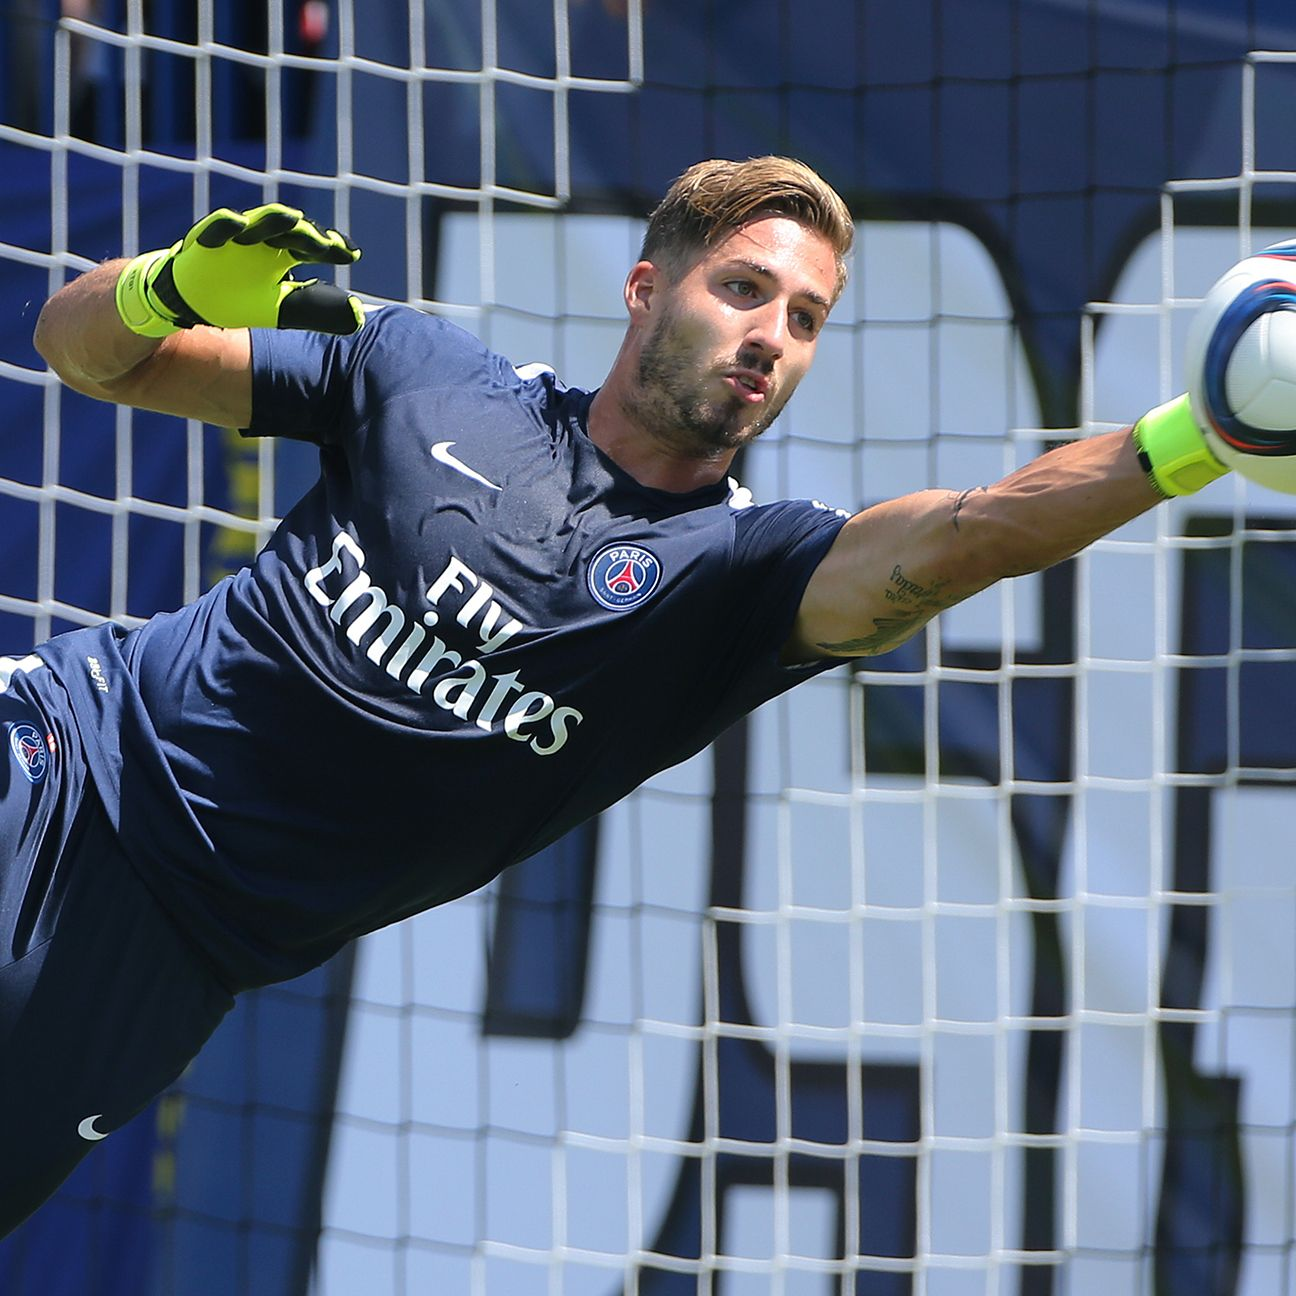 Kevin Trapp has started every match for PSG this season.